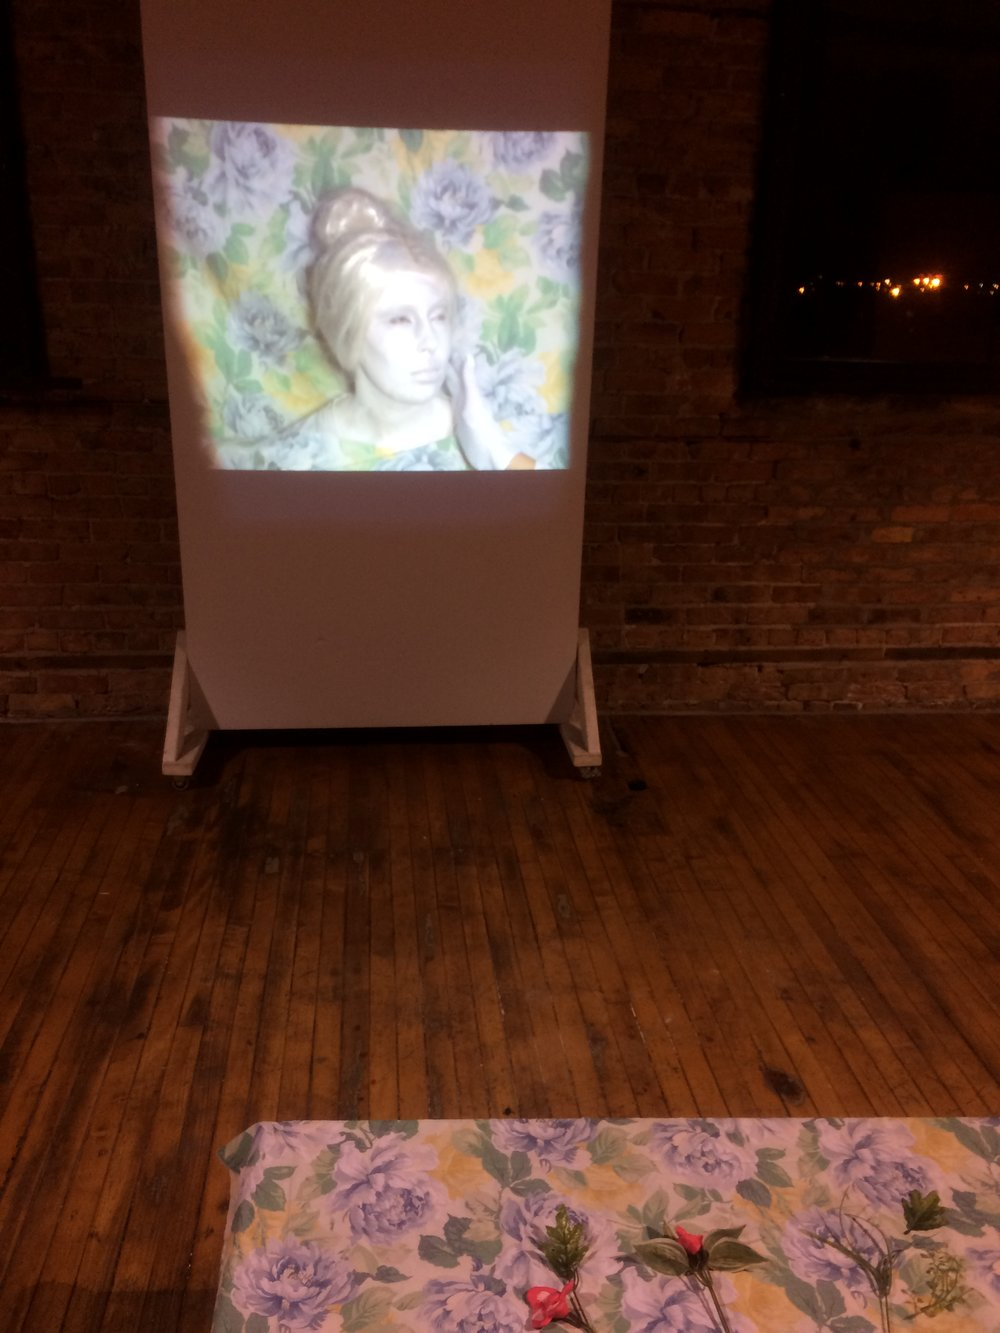 Grace With Arms Like Roses, Video Installation